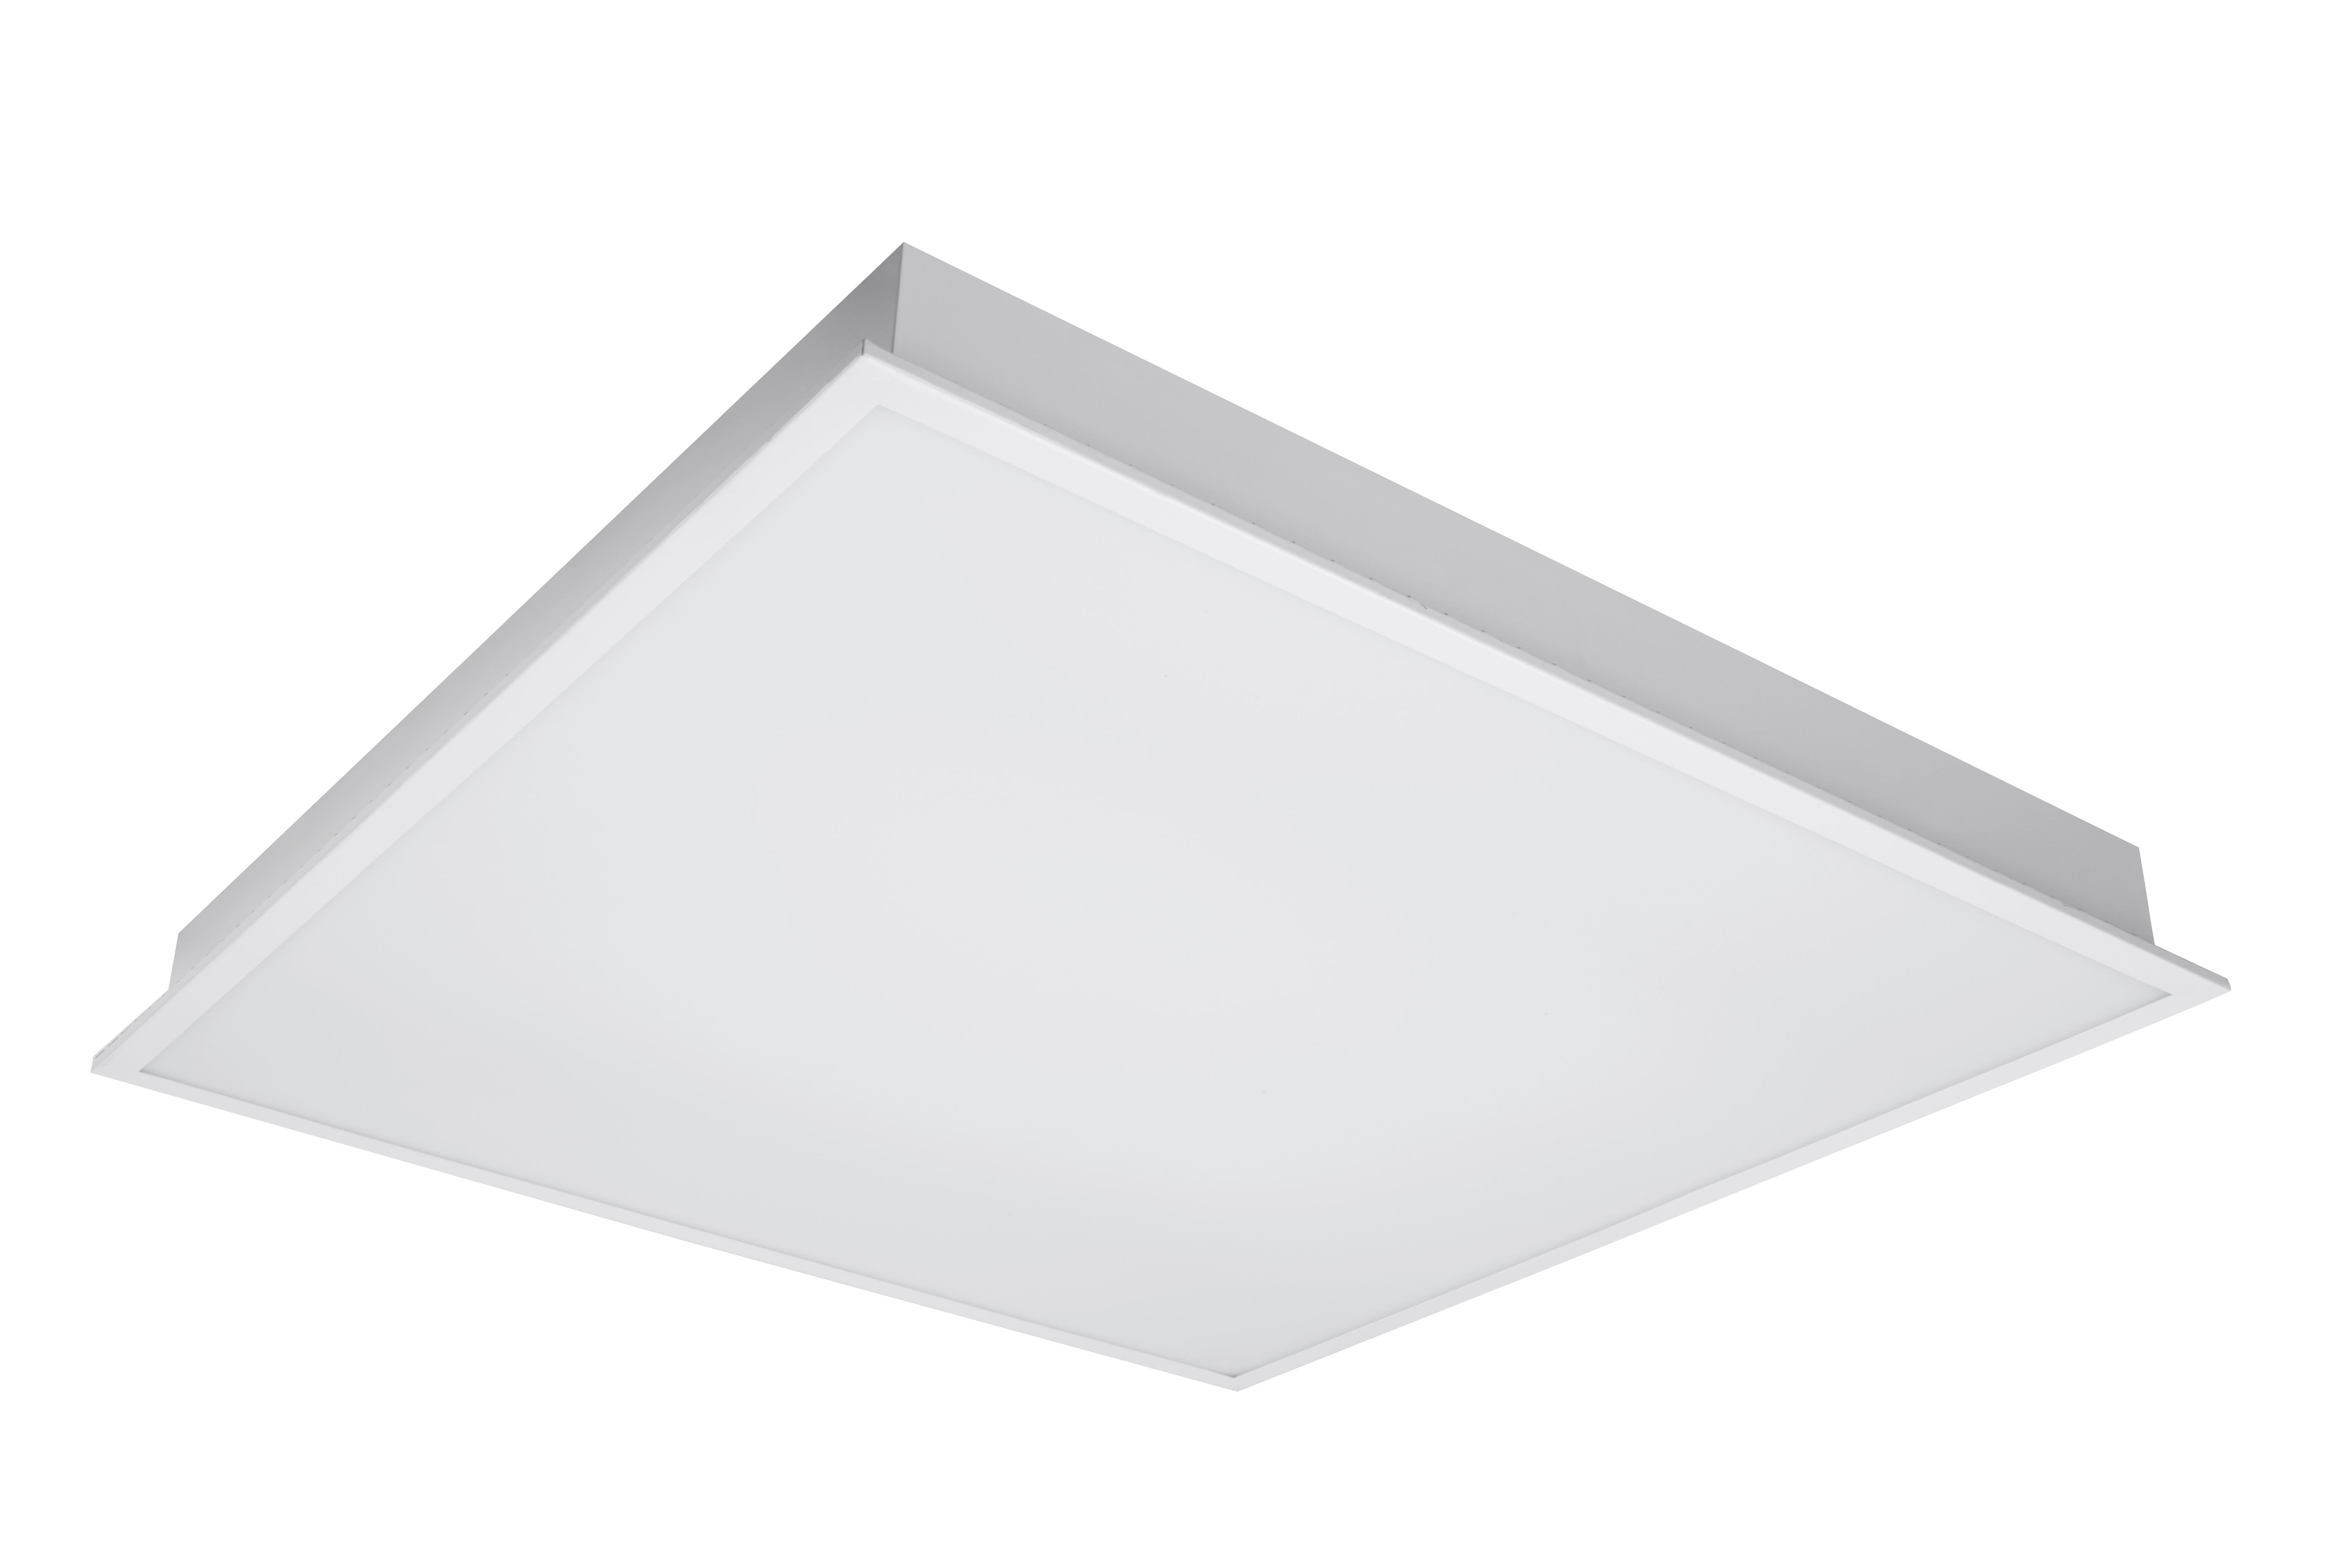 22FPL30/835/LED 81918 LED FLAT PANEL 2X2 30W 3500K 0-10V DIMMABLE